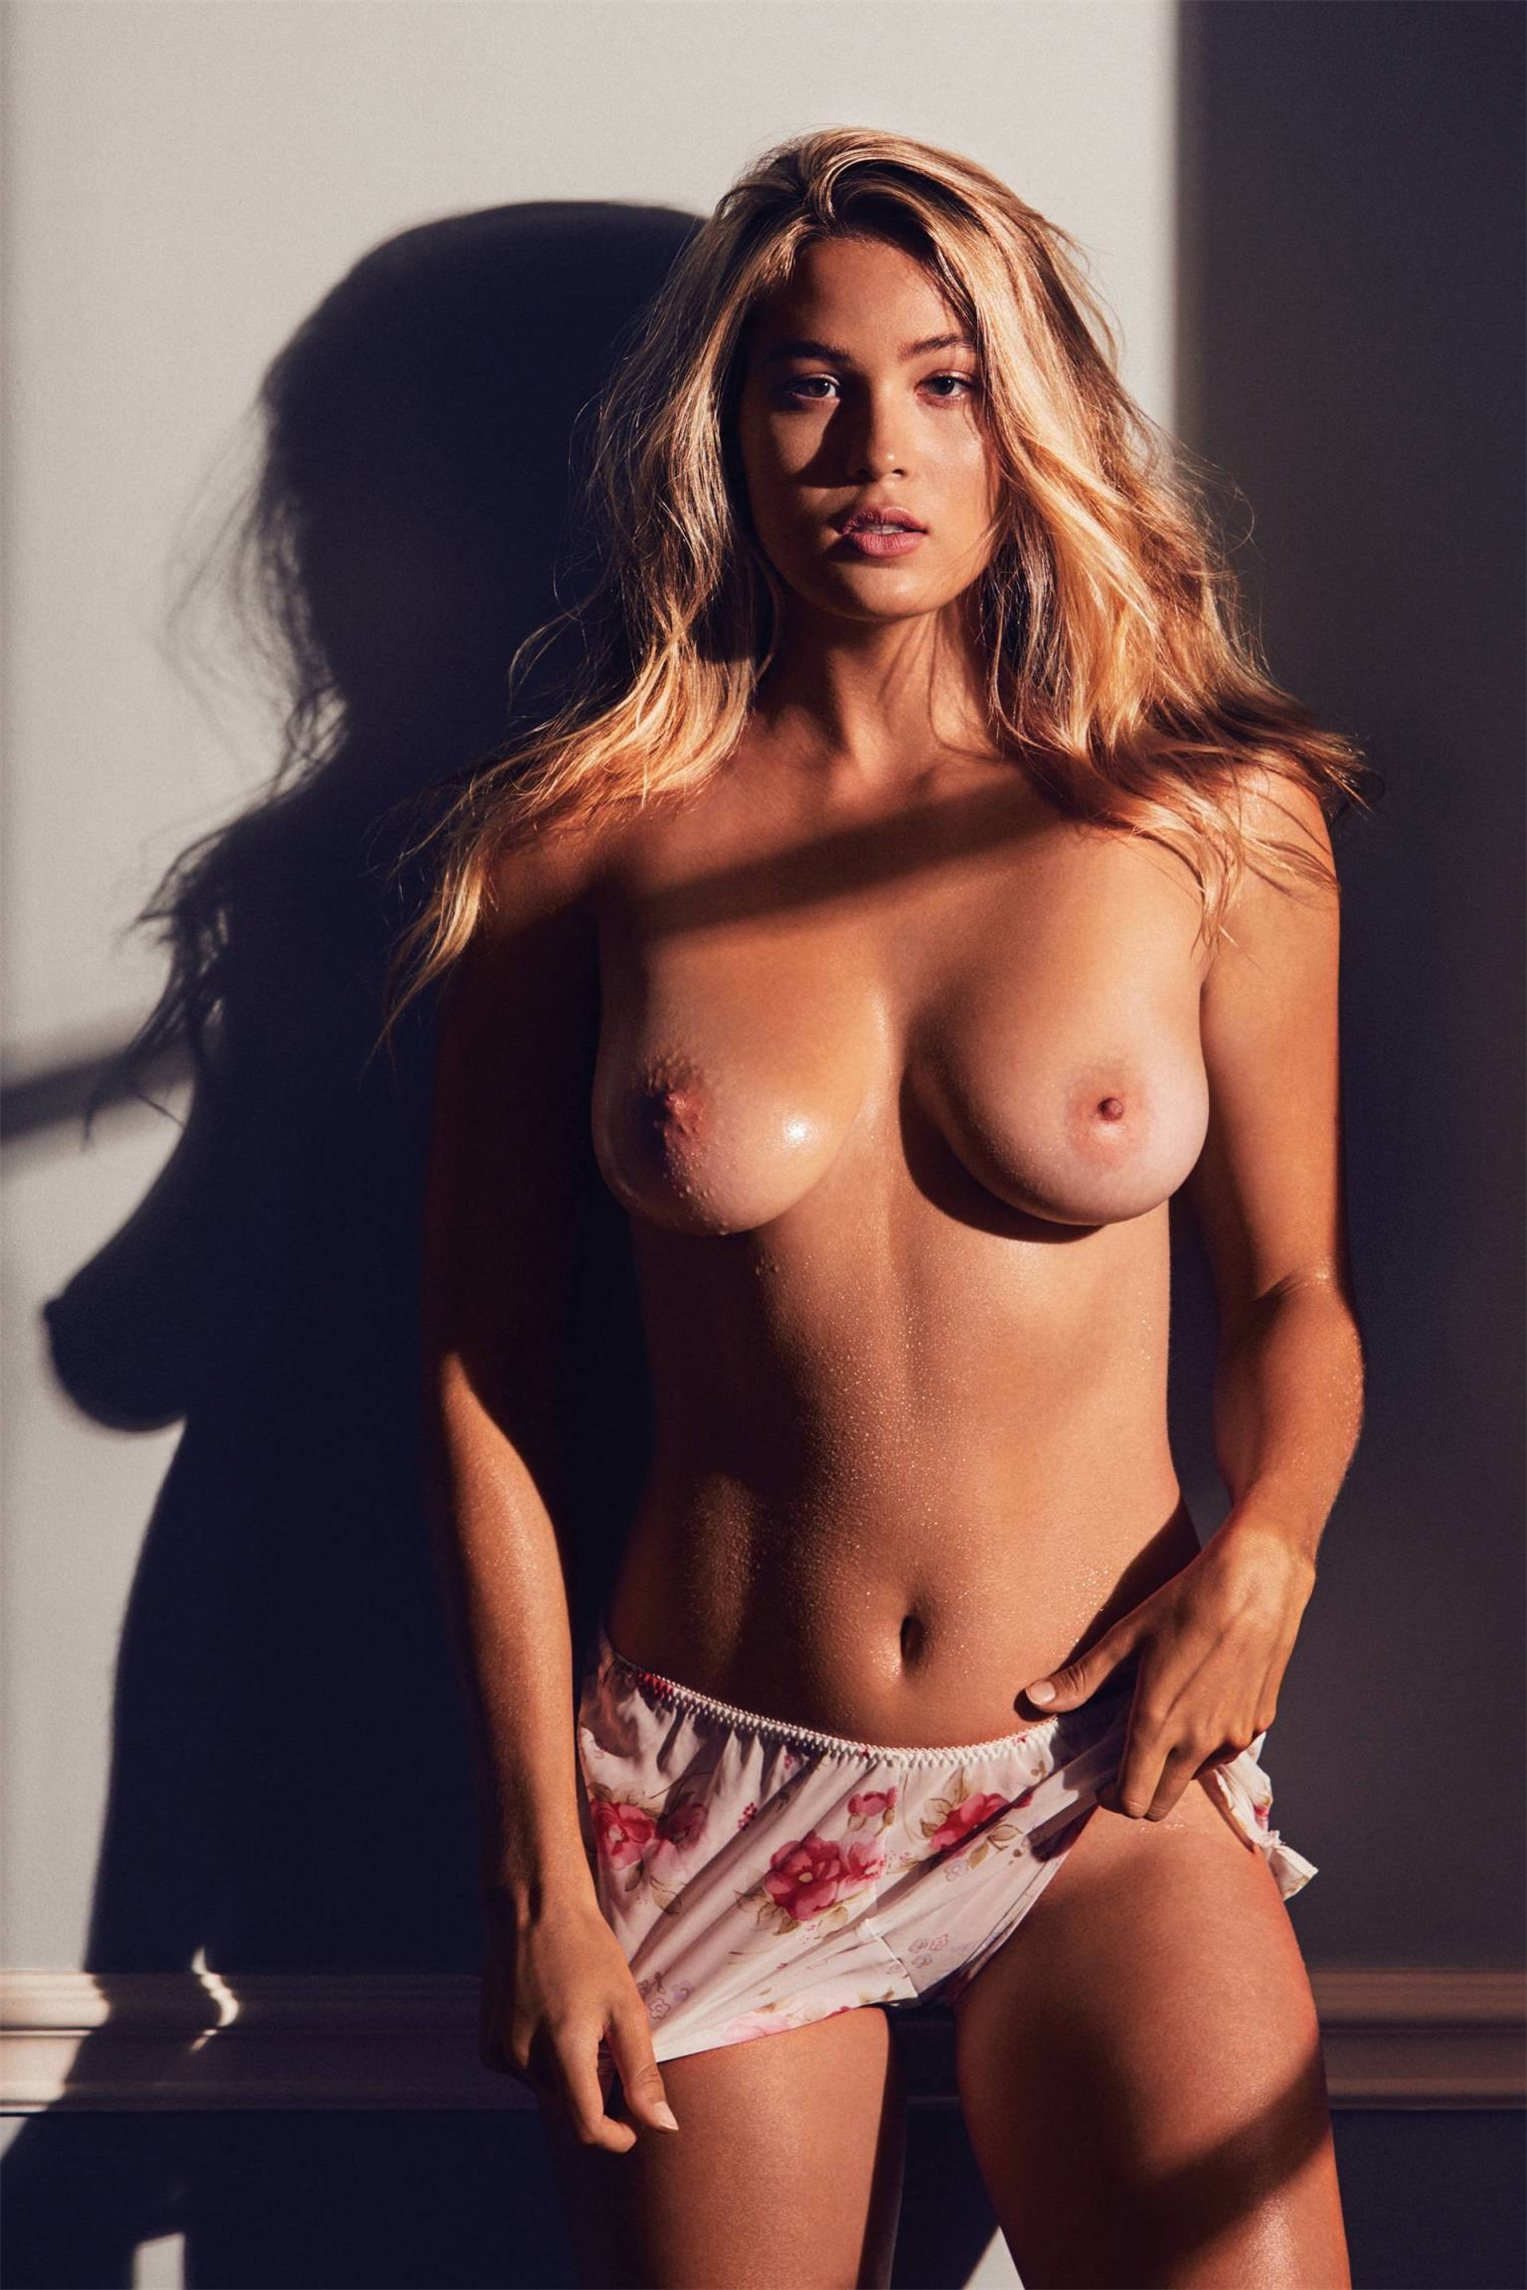 Megan Moore nude by Kyle Deleu - Playboy USA july/august 2018